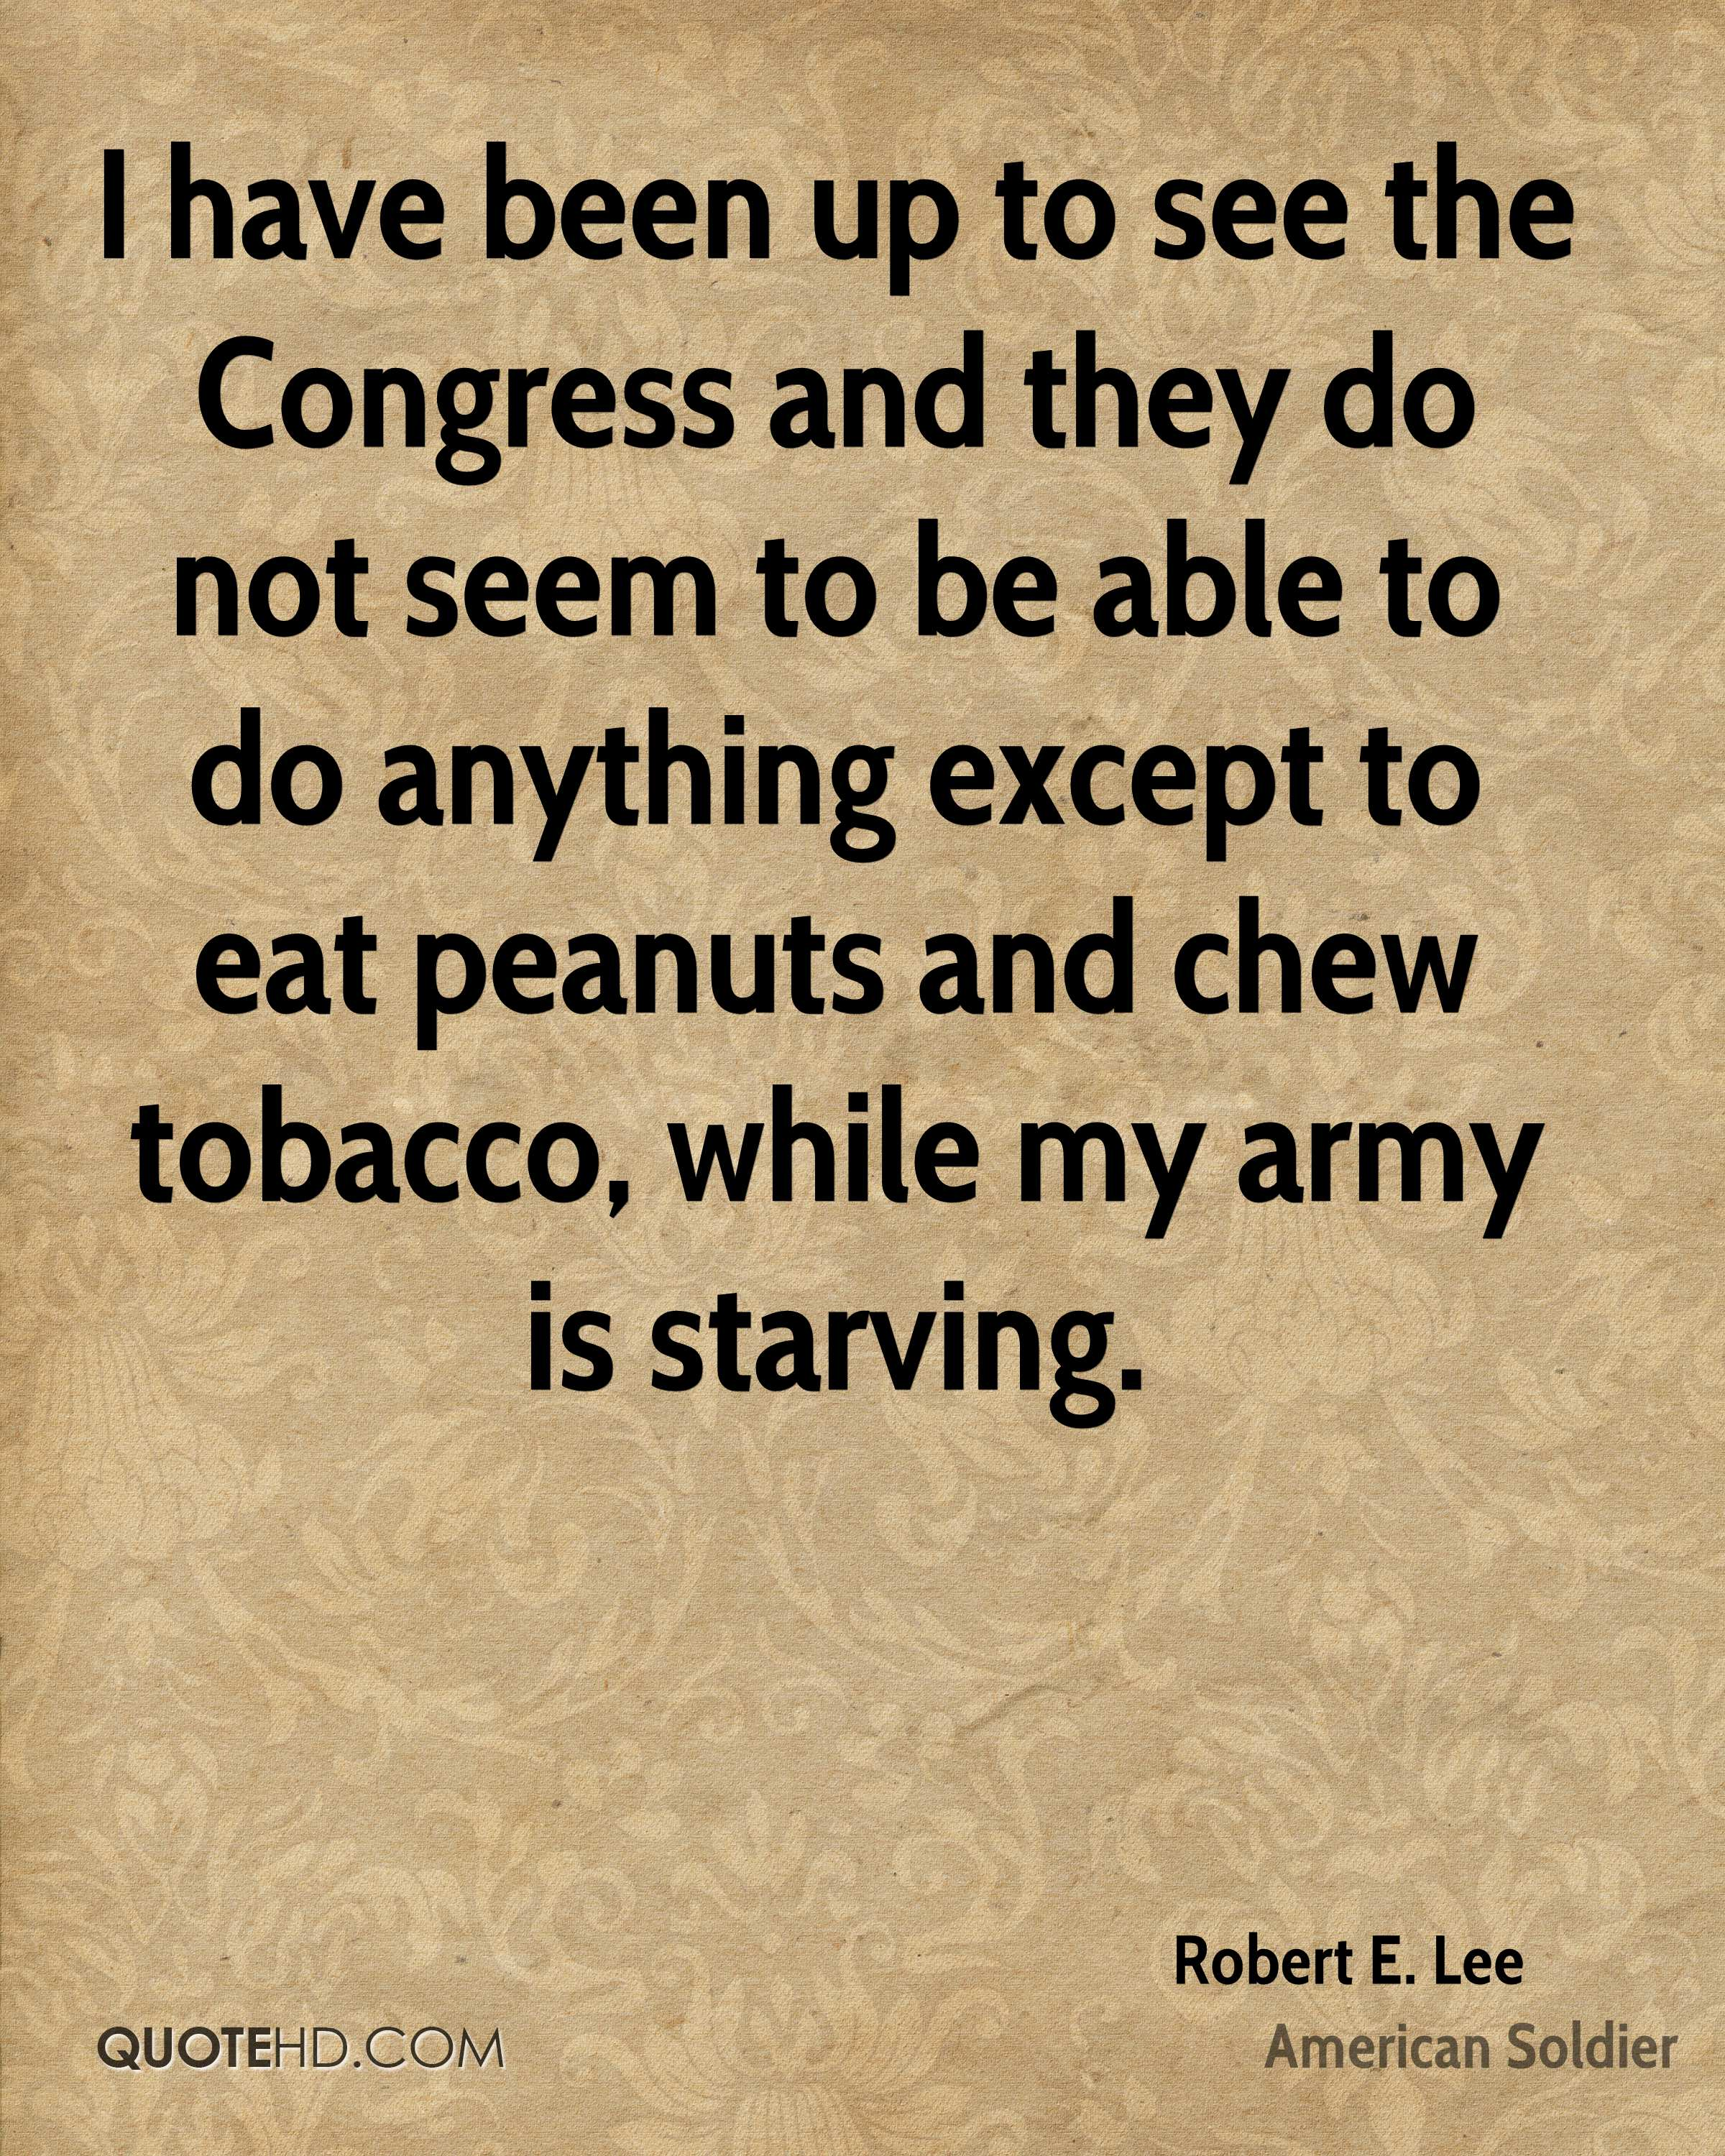 I have been up to see the Congress and they do not seem to be able to do anything except to eat peanuts and chew tobacco, while my army is starving.